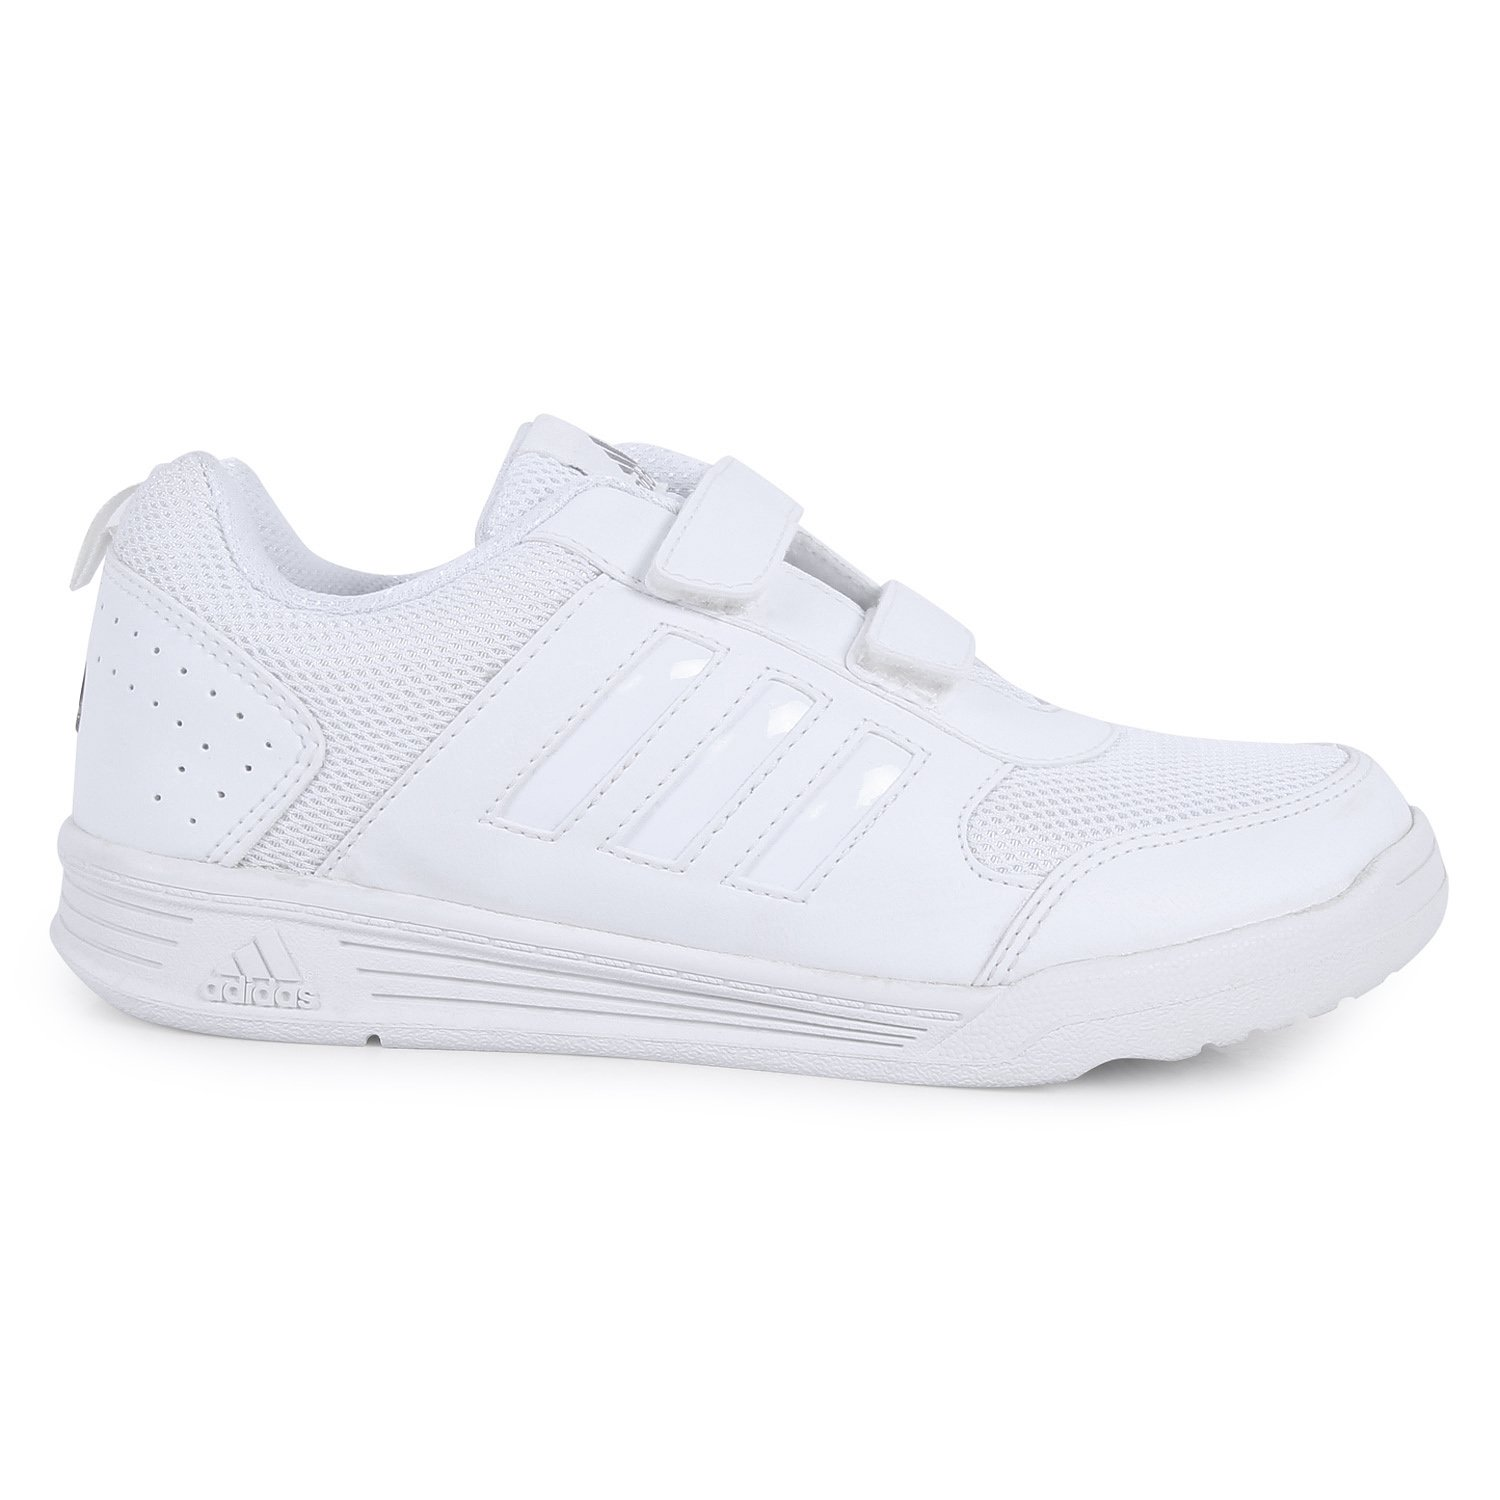 1340b7a03af Adidas White School Shoes - Sports Shoes Kids Range (3 to 12 Years)  Buy  Online at Low Prices in India - Amazon.in